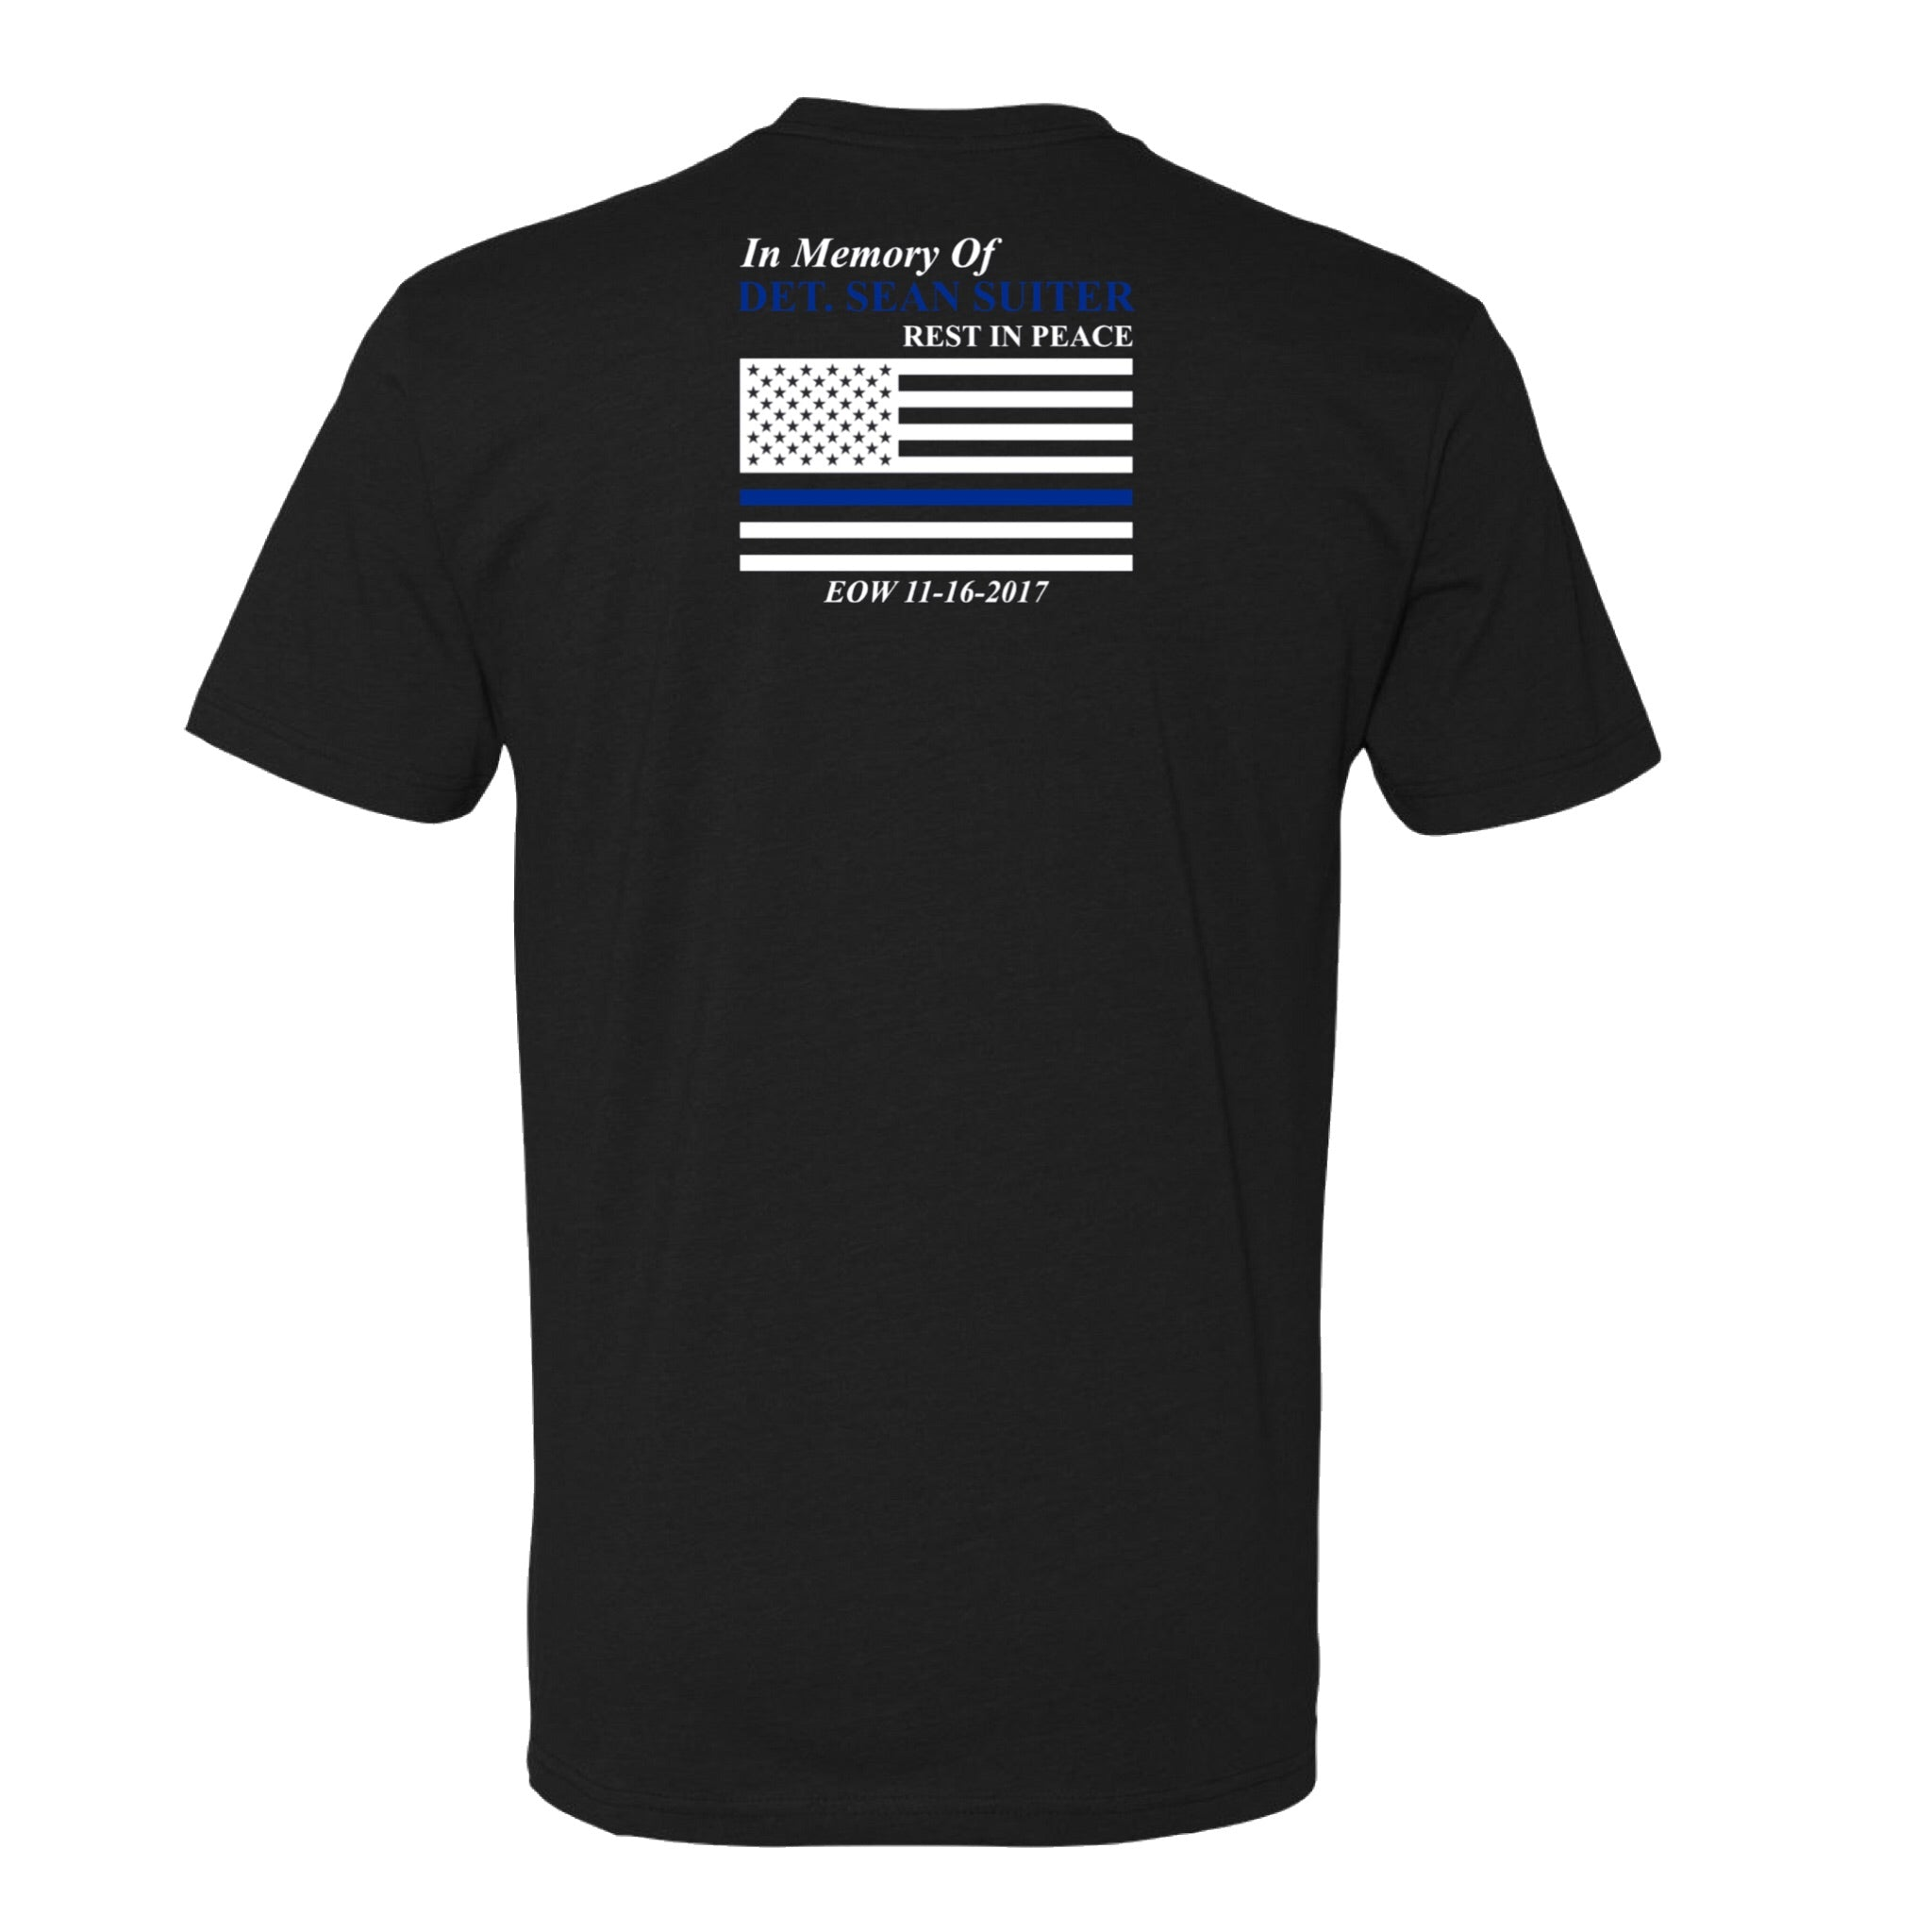 Detective Sean Suiter Official Memorial Shirt